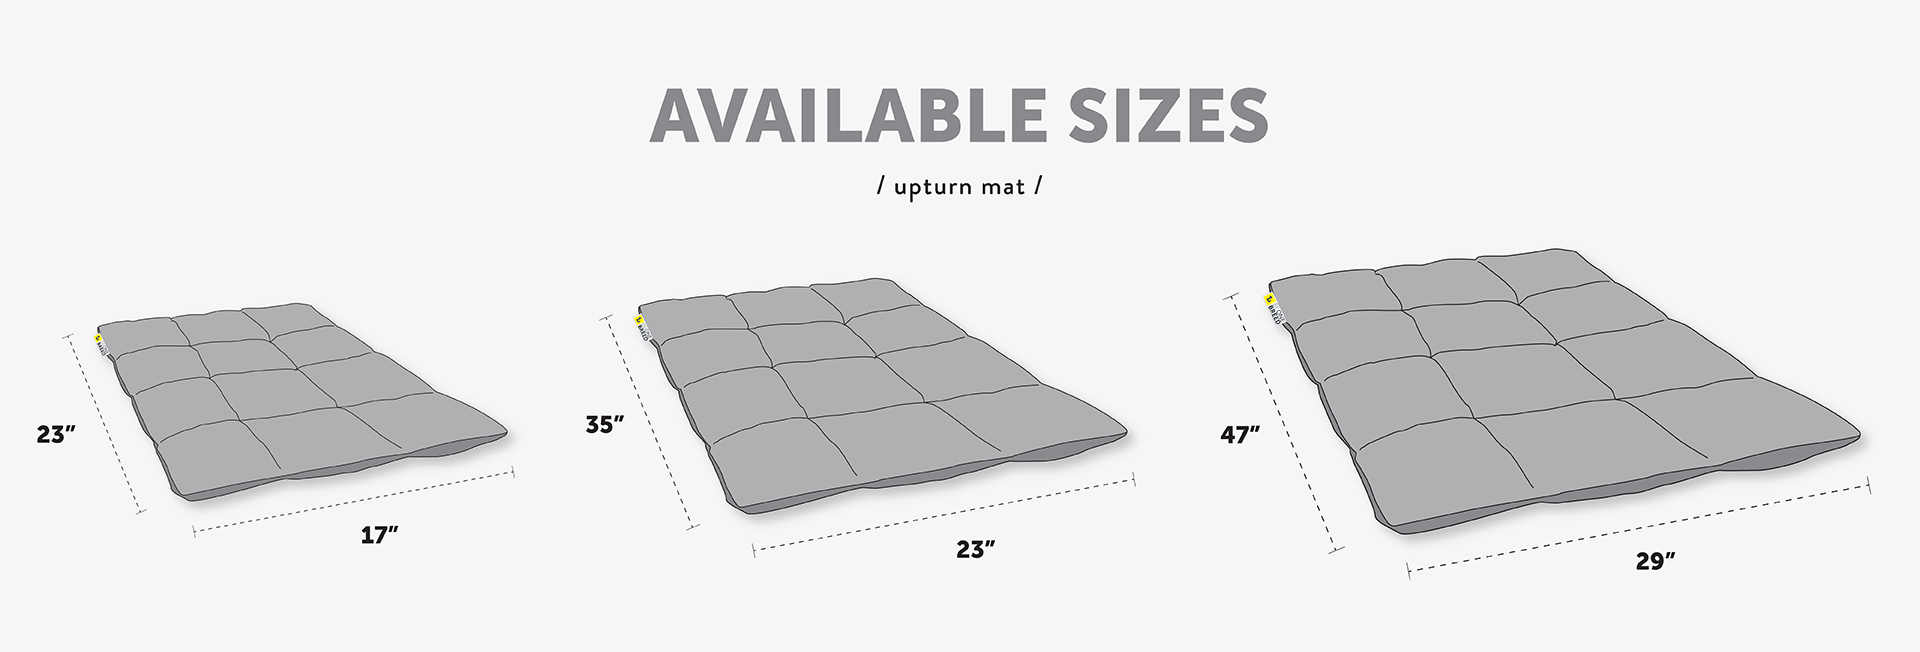 Size-upturn-mat-for-dogs-english